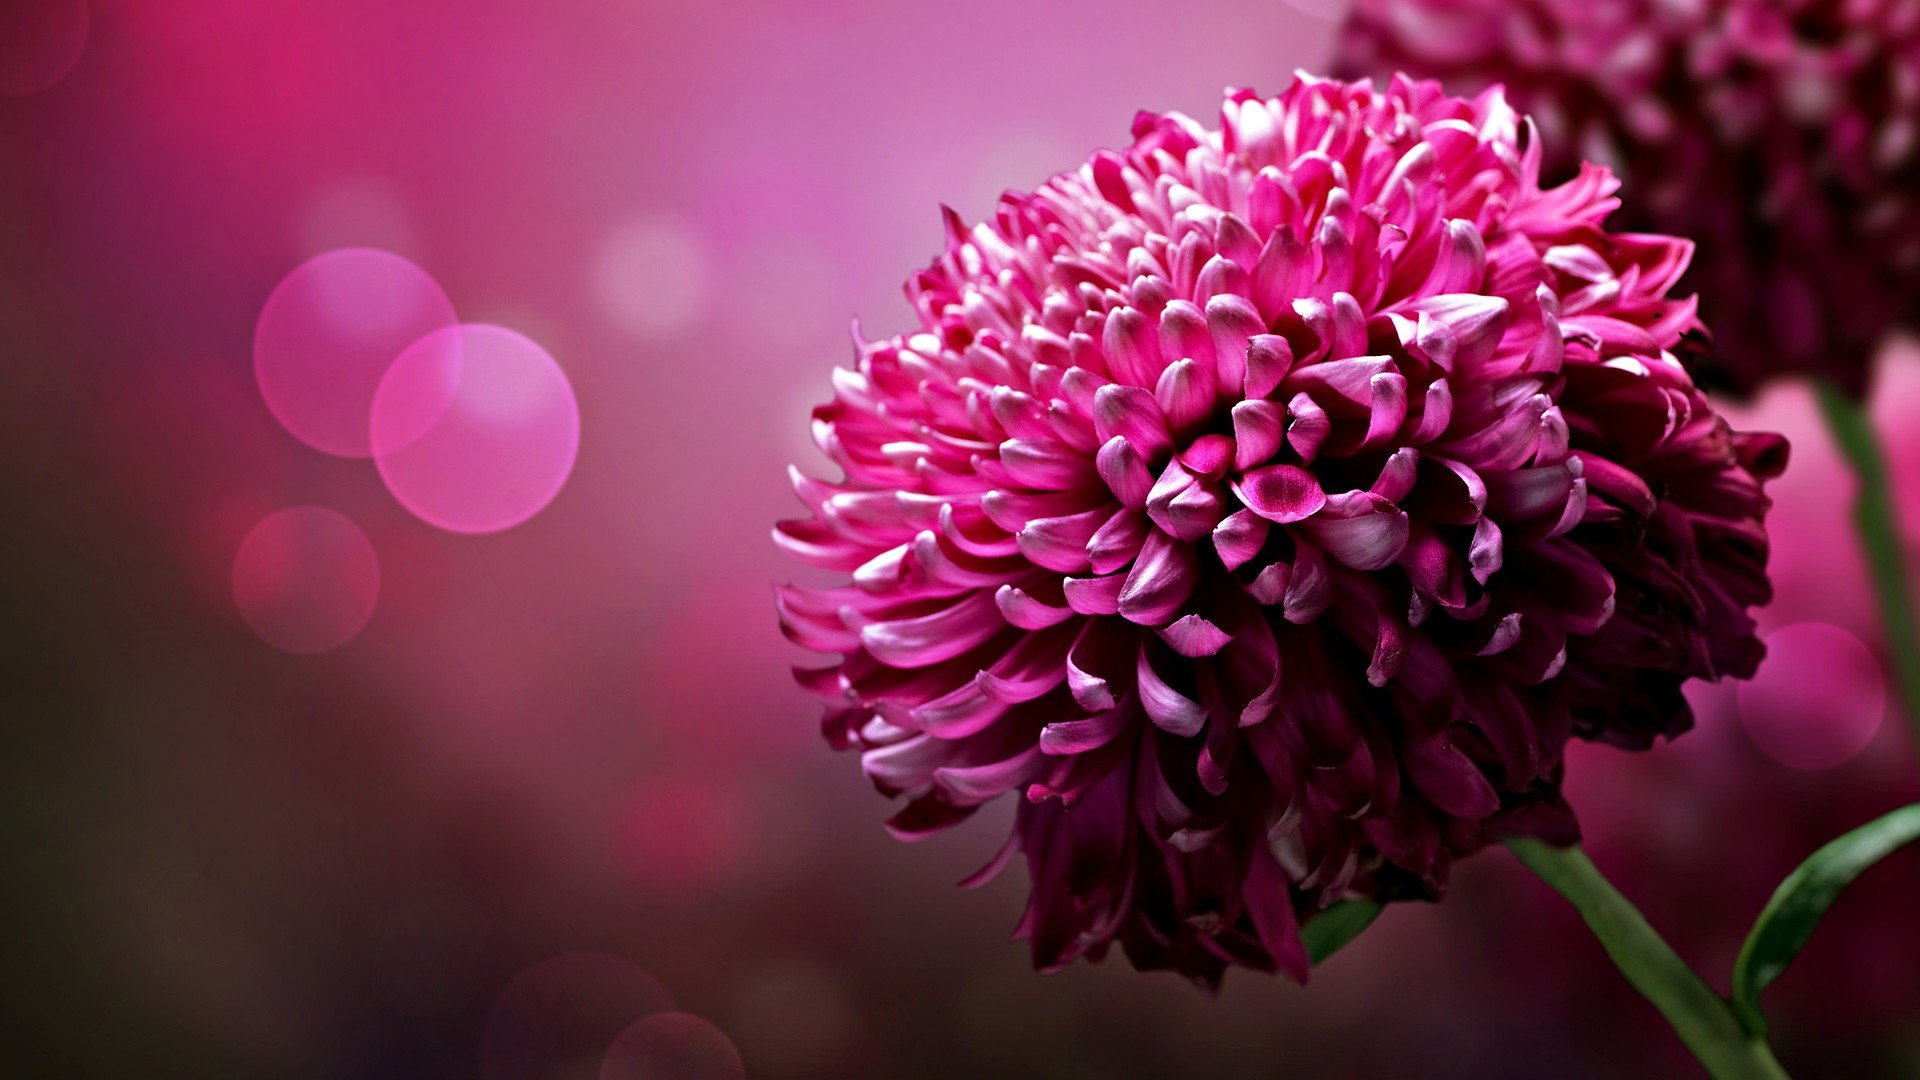 beautiful flower images wallpapers  wallpapersafari, Beautiful flower